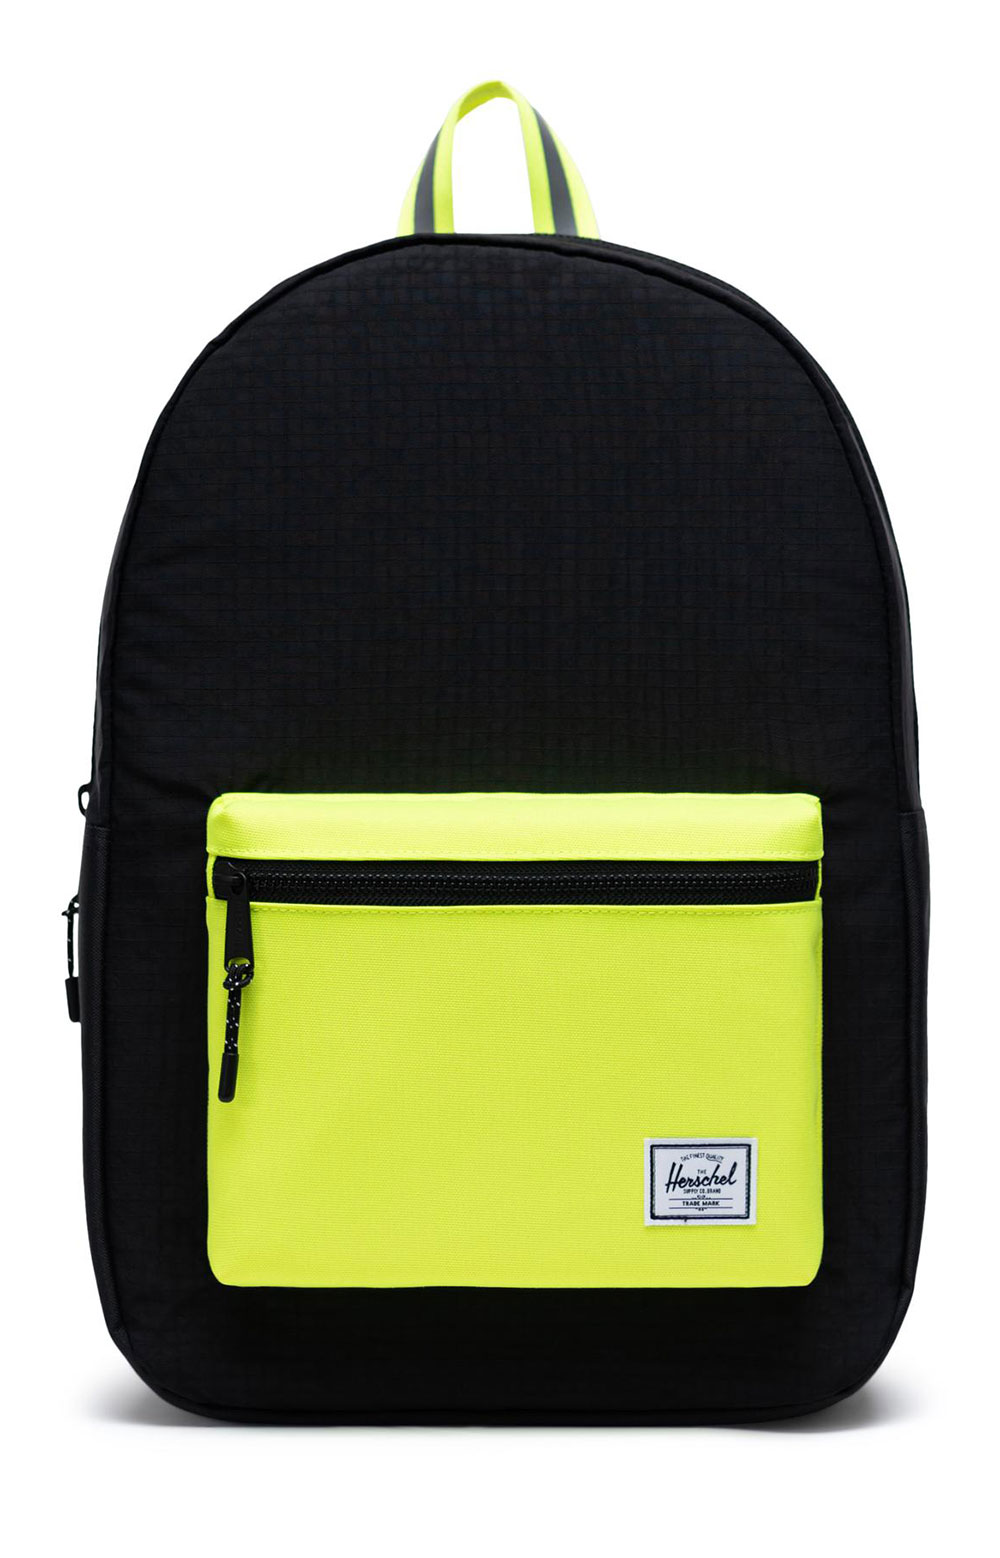 Settlement Backpack - Black Enzyme Ripstop/Black/Safety Yellow